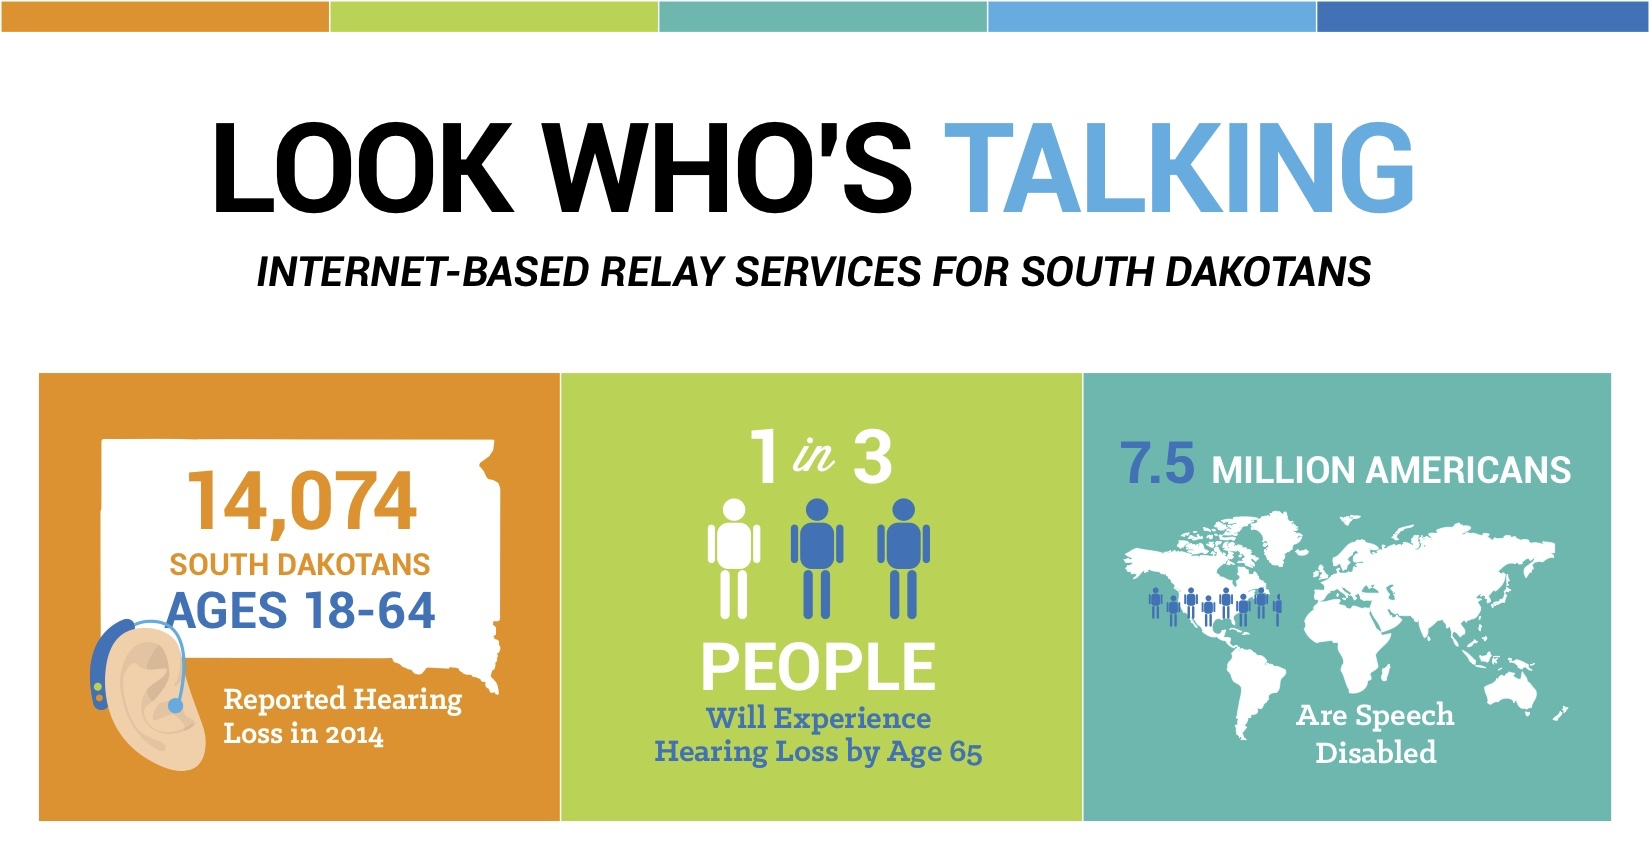 Look Who's Talking: Internet-Based Relay Services for South Dakotans